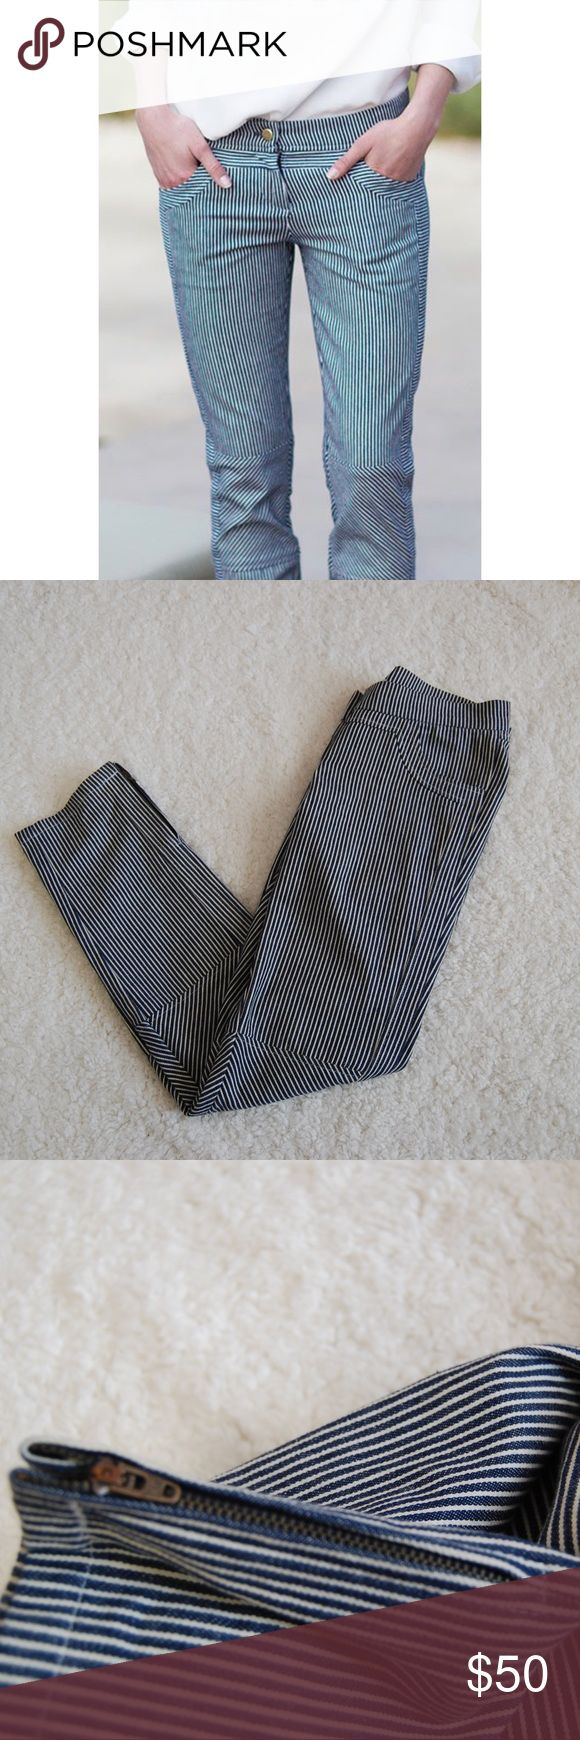 Emerson Fry Mick Pant Railroad Stripe Navy Blue 0 Perfect Condition. Size 0. Inseam: 28 inches. Rise: 8 inches. Emerson Fry Pants Skinny